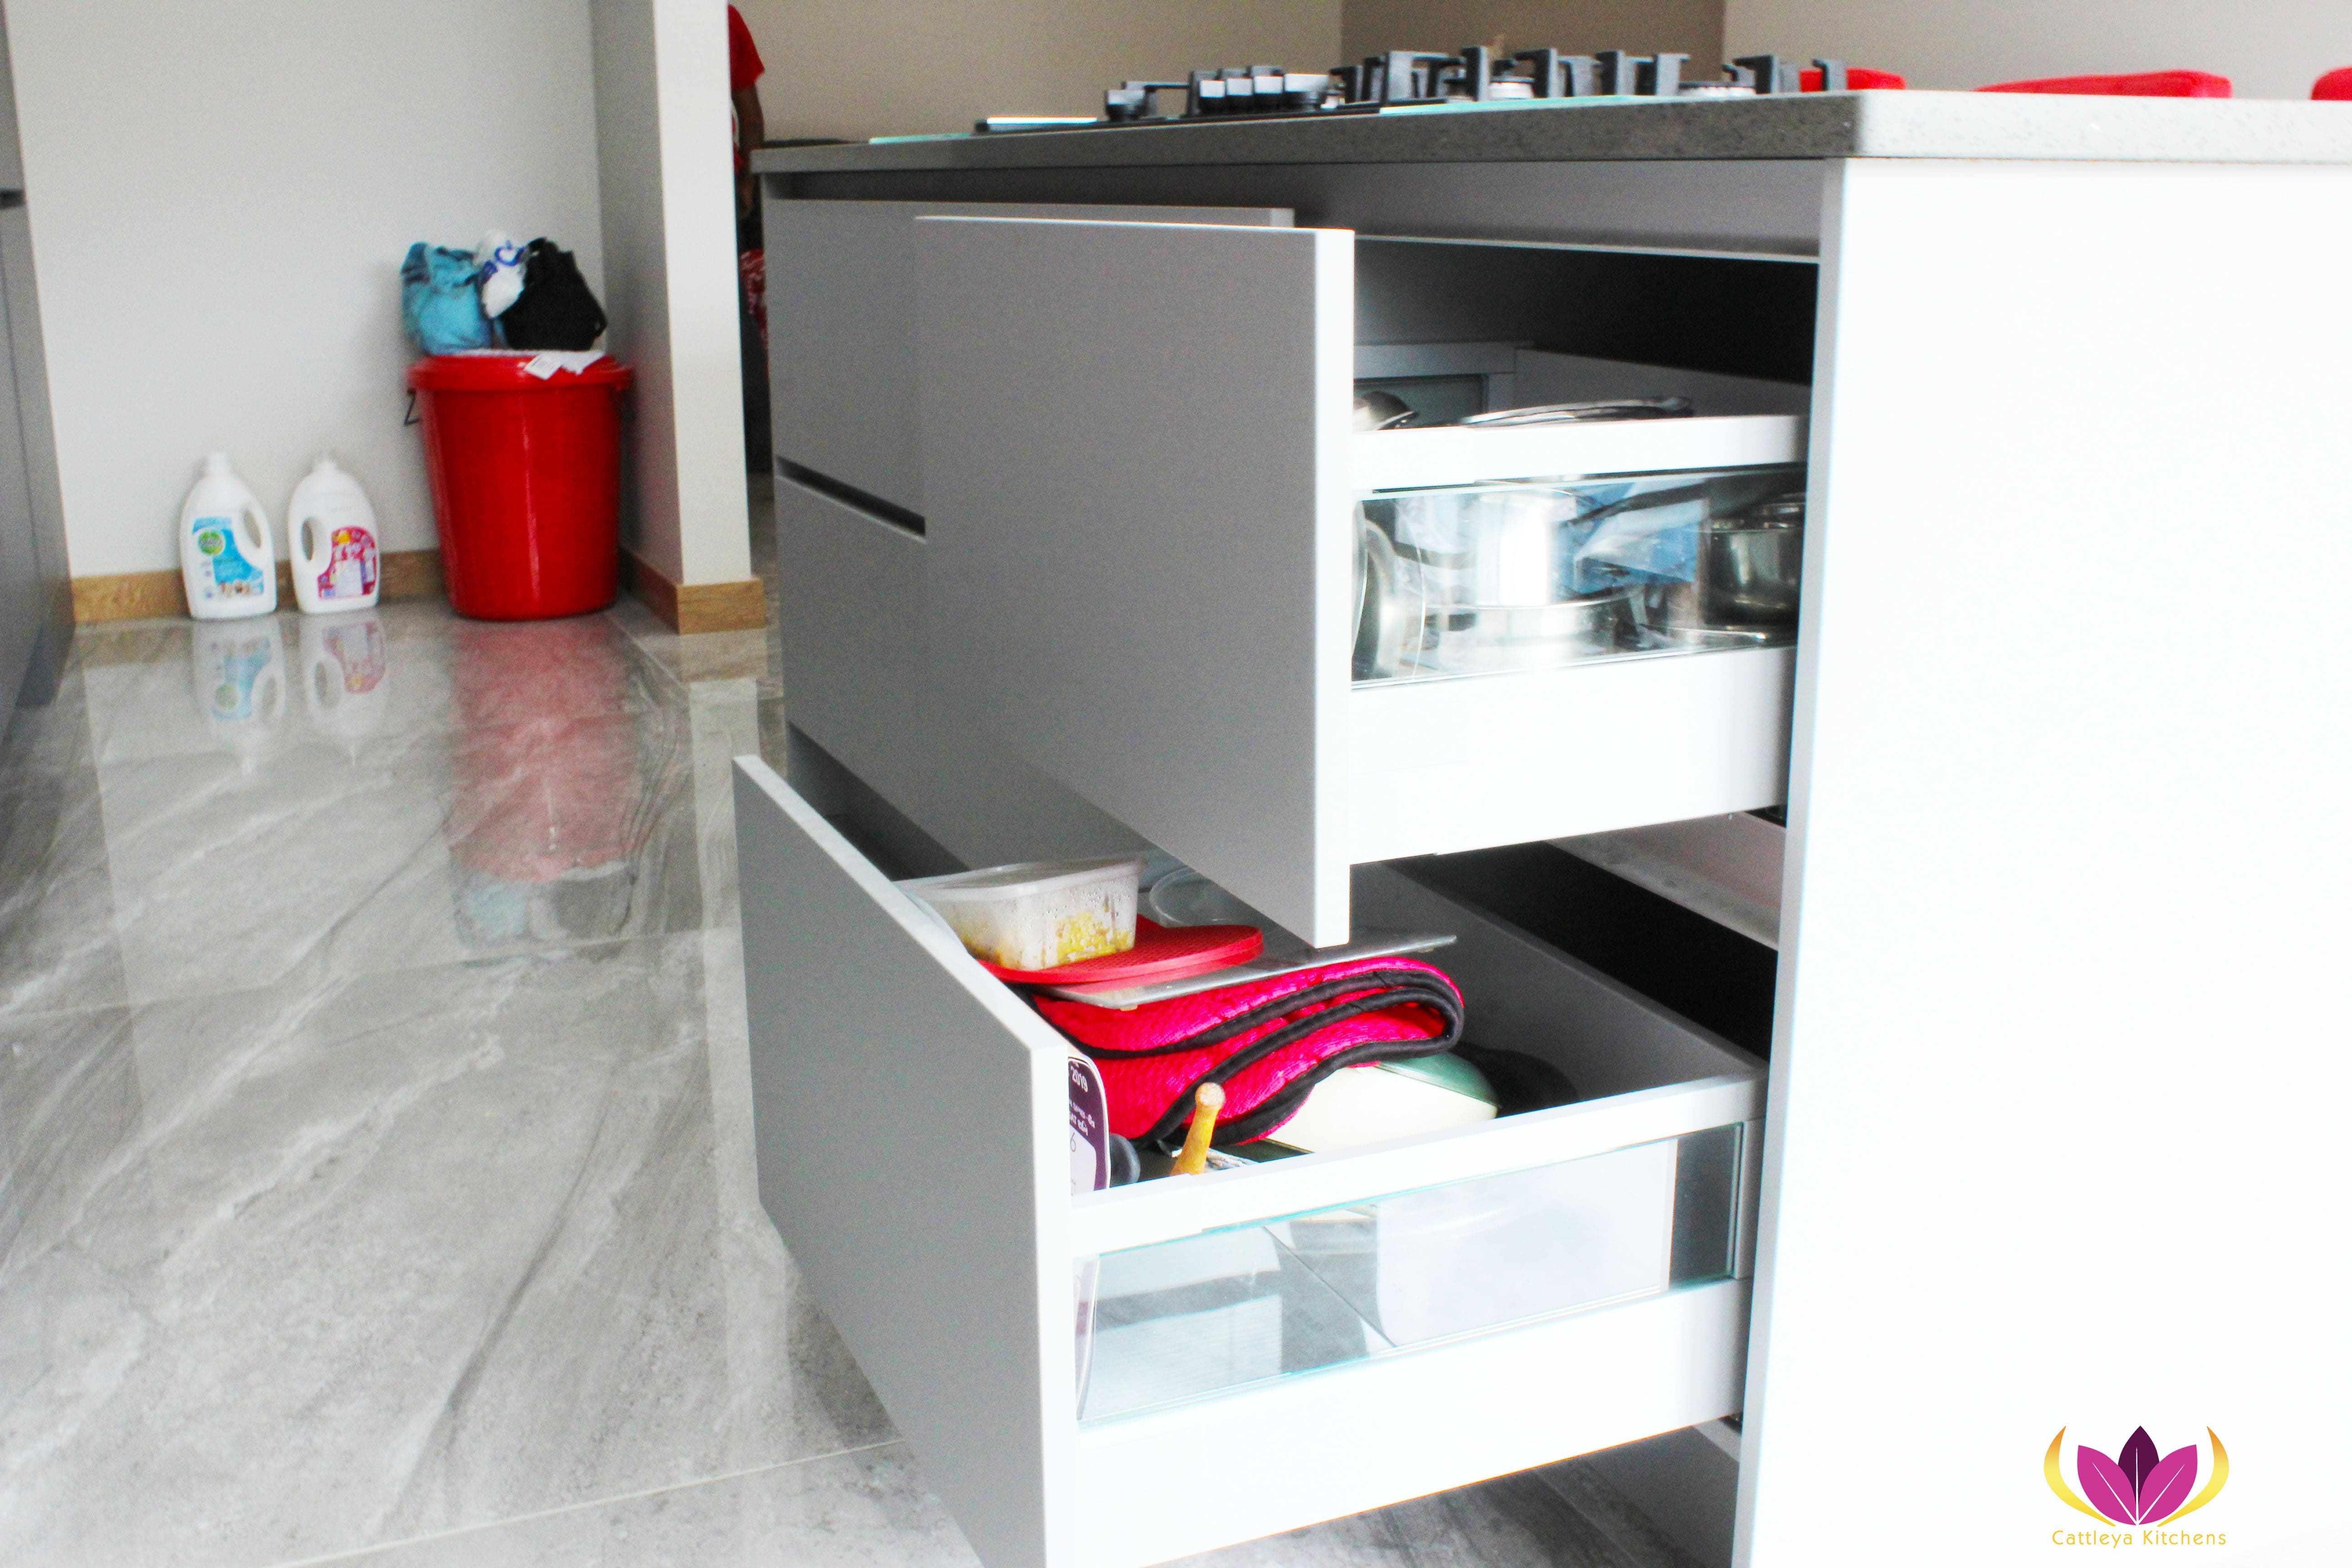 A closer look of drawers with glass side panel - Gray & Gloss Red Perivale Finished Kitchen Project